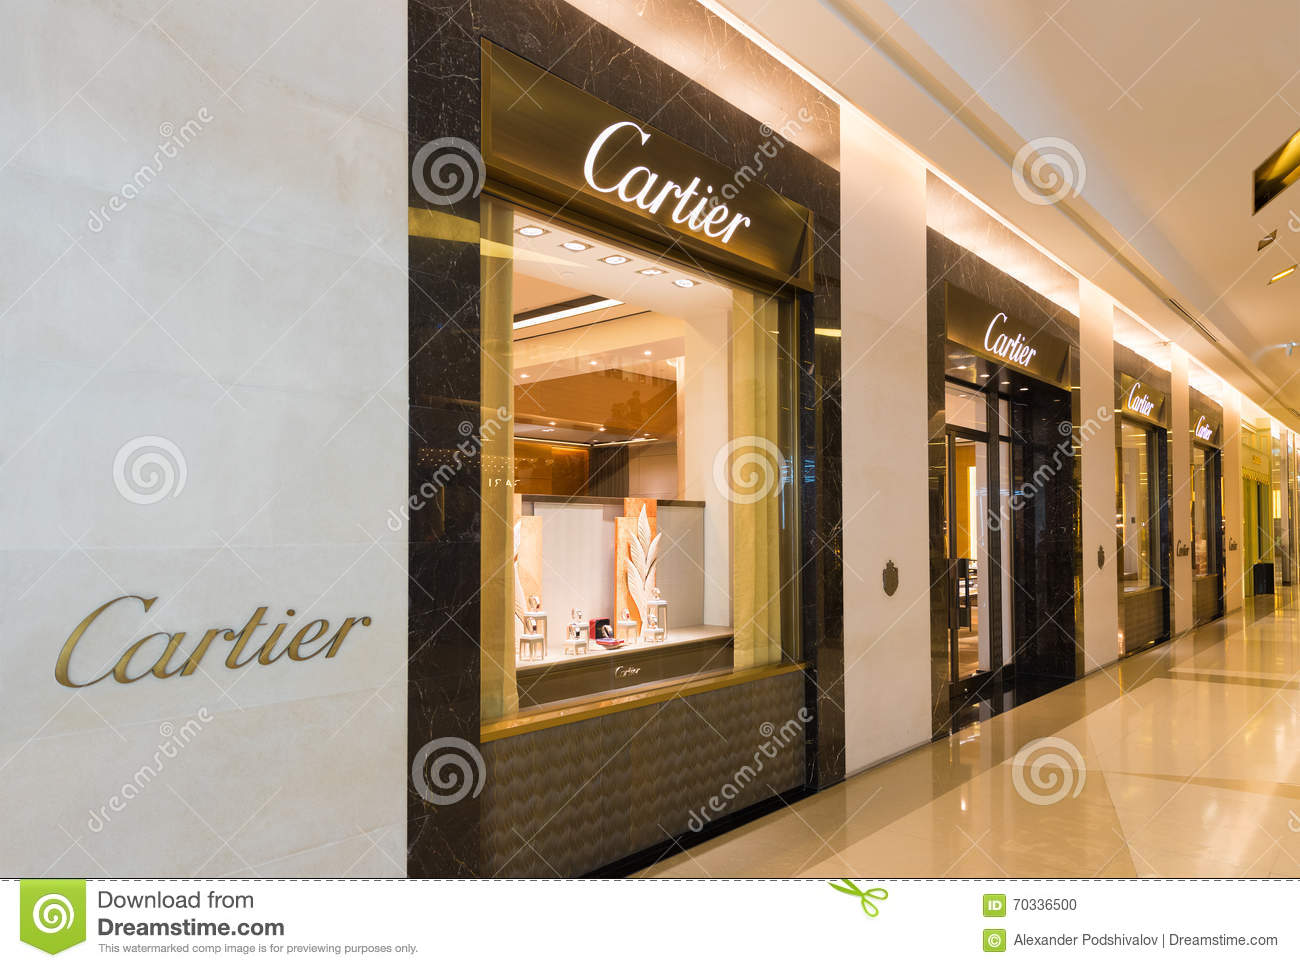 cartier outlet online qtsr  cartier outlet store